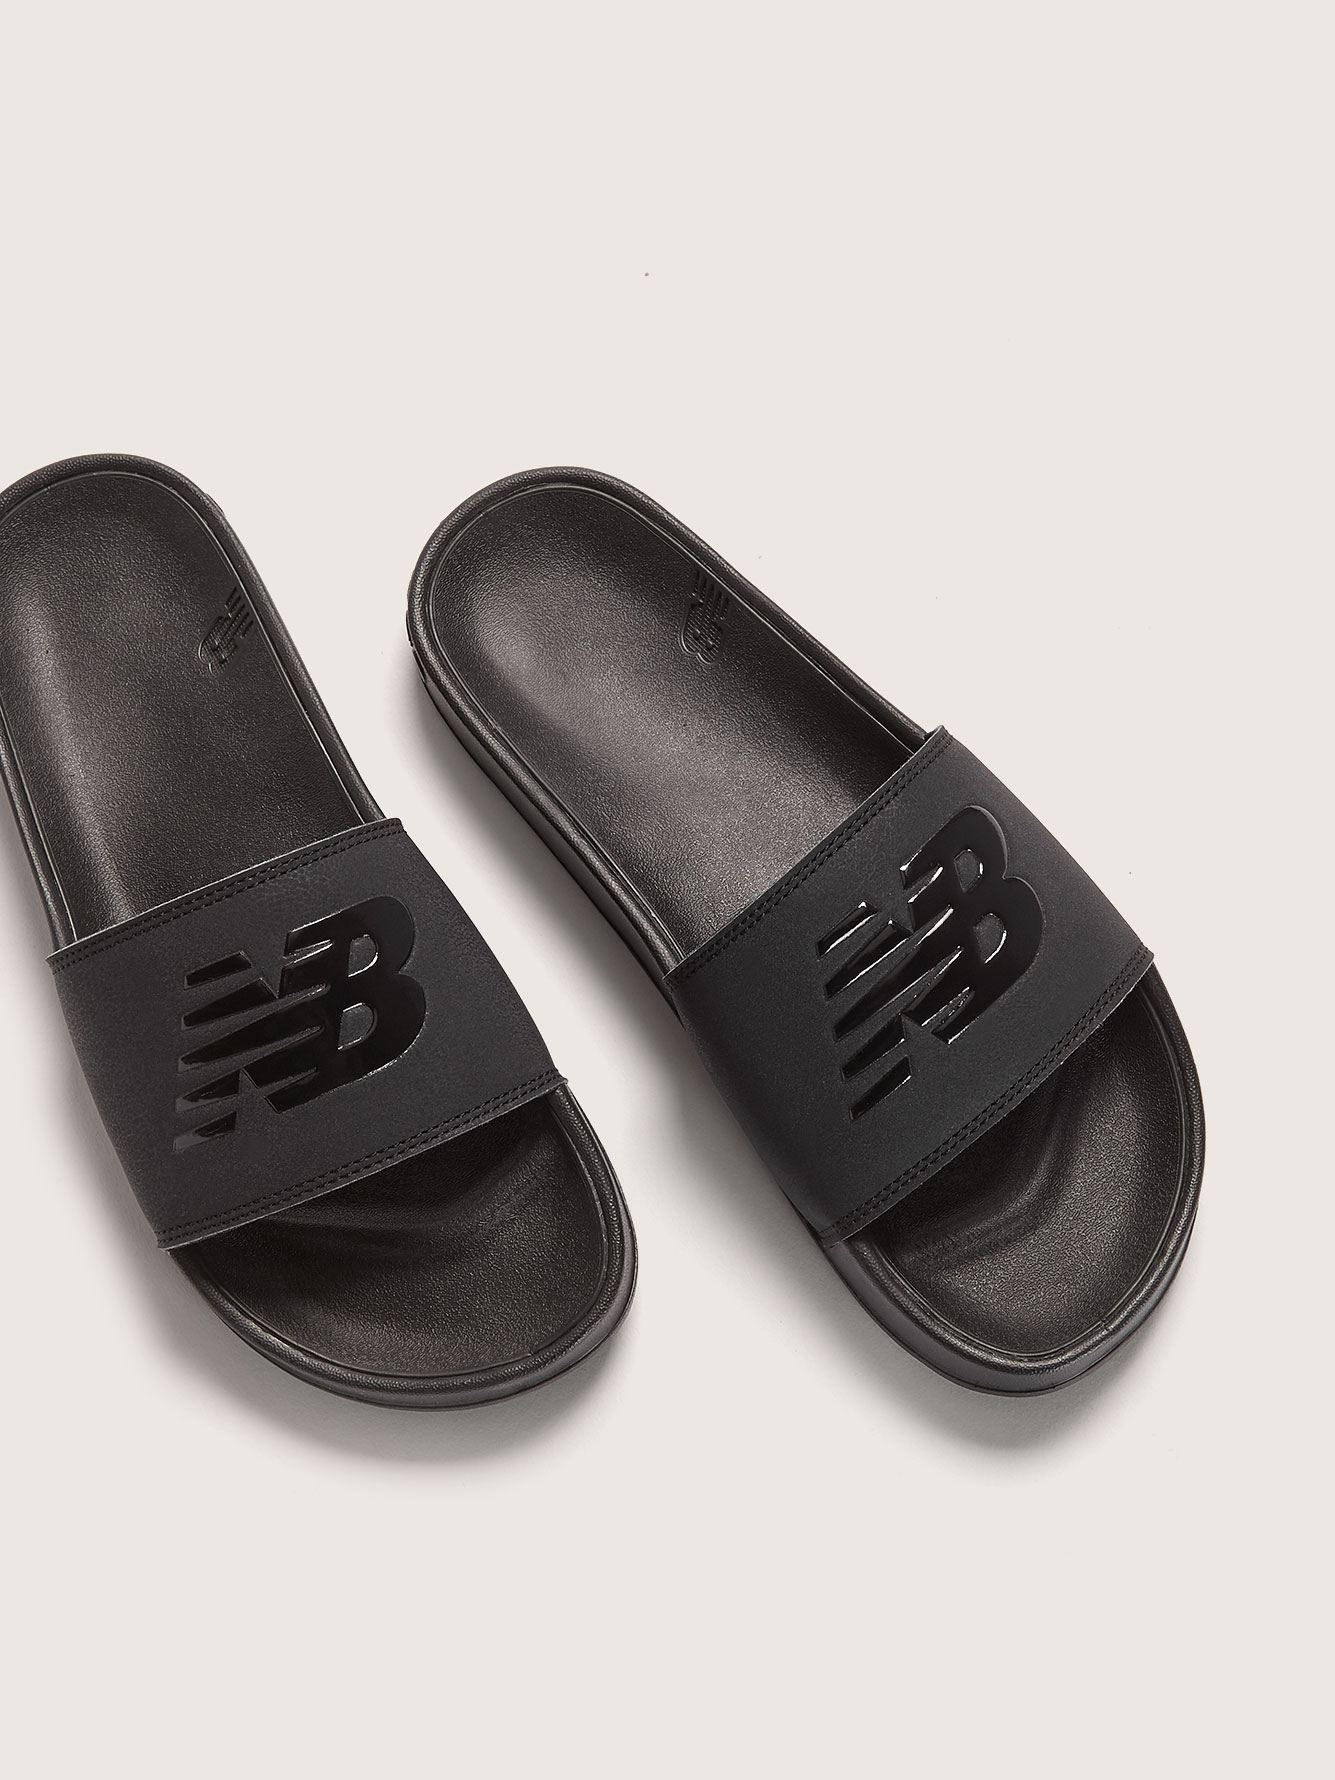 Pool Slide Sandal – New Balance